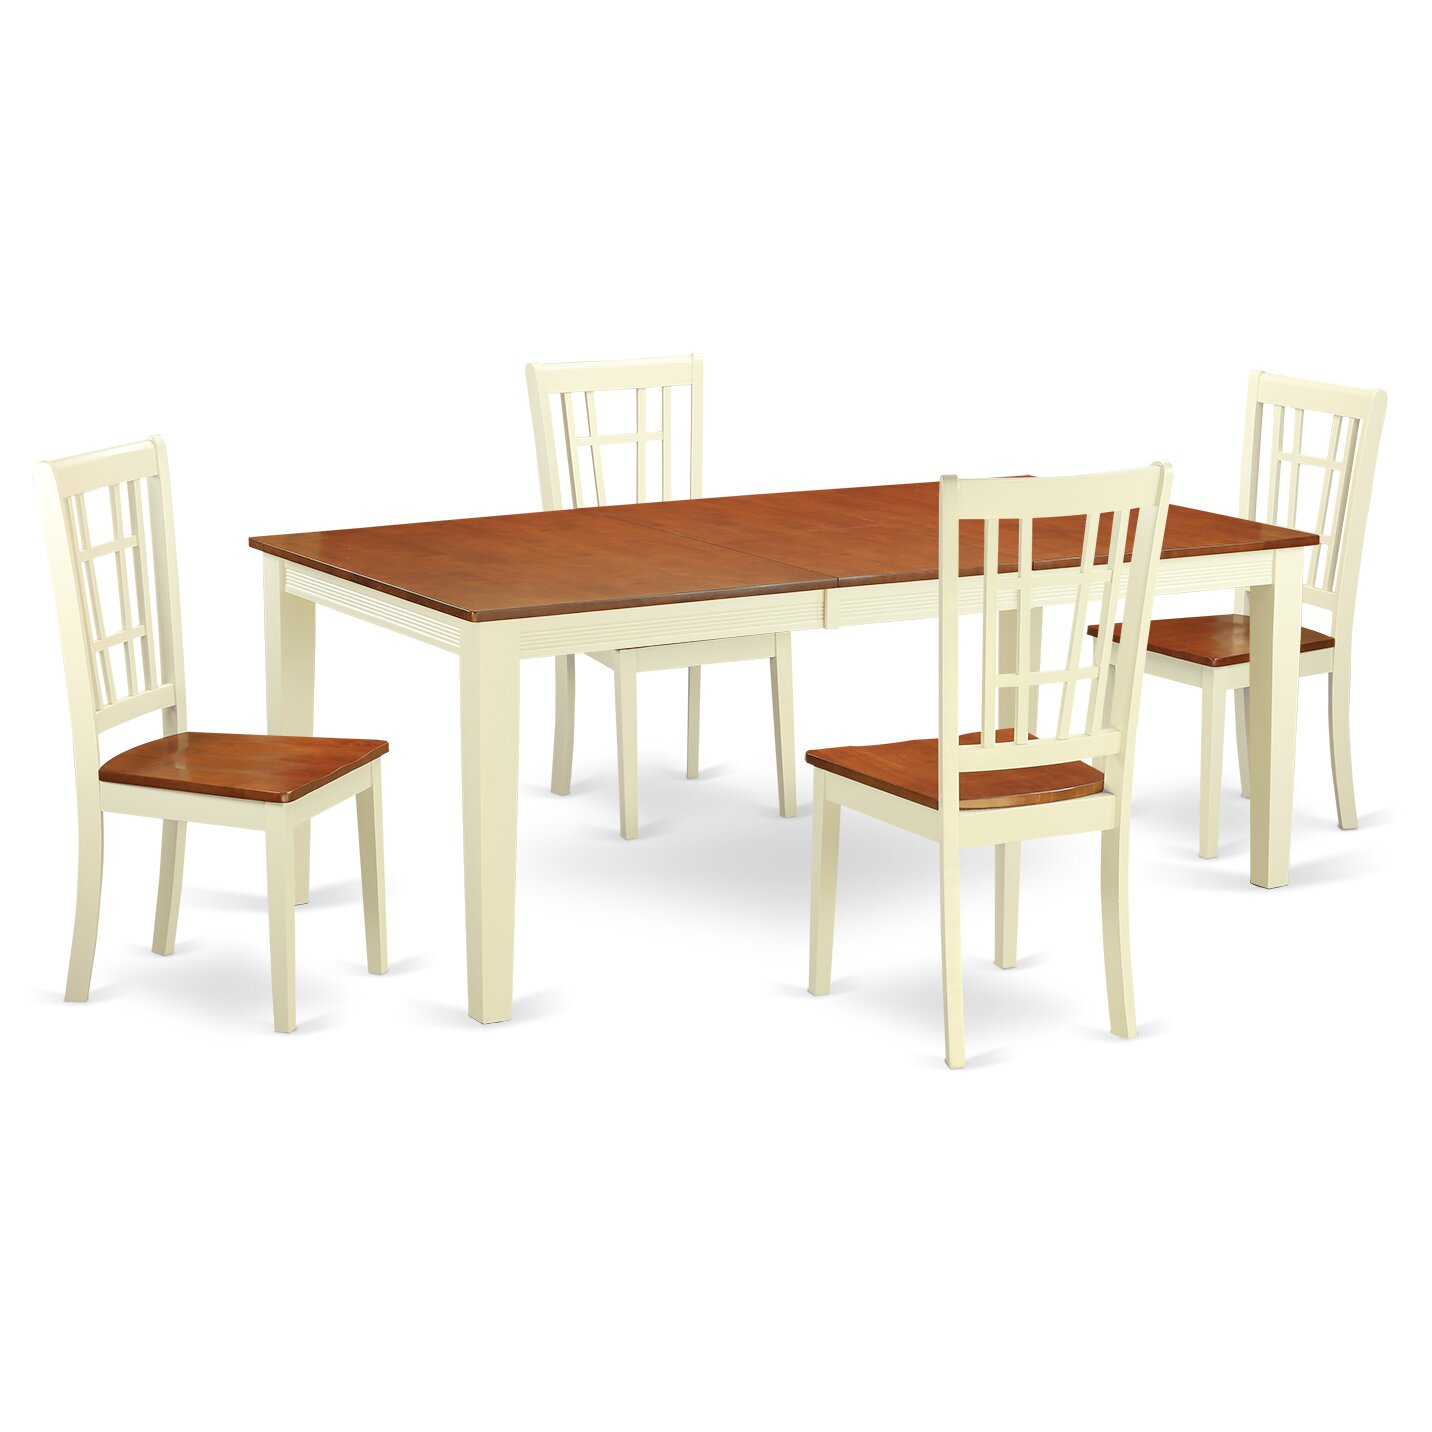 East west quincy 5 piece dining set wayfair for Small kitchen furniture